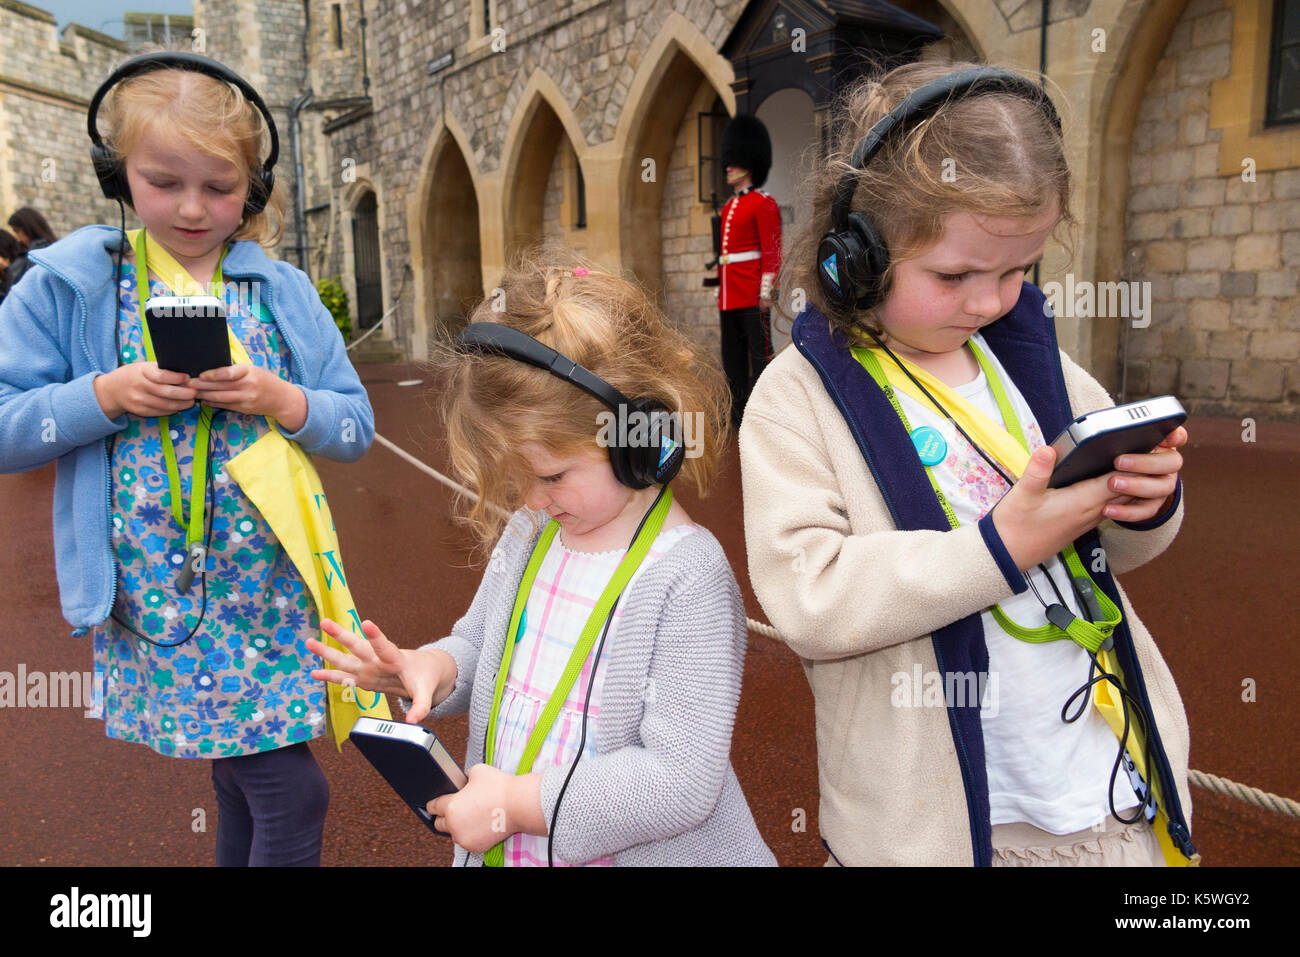 Three sisters /children /kid /kids on holiday listen to an audio guide information while on a tour inside the walls of Windsor Castle, Berkshire UK. - Stock Image